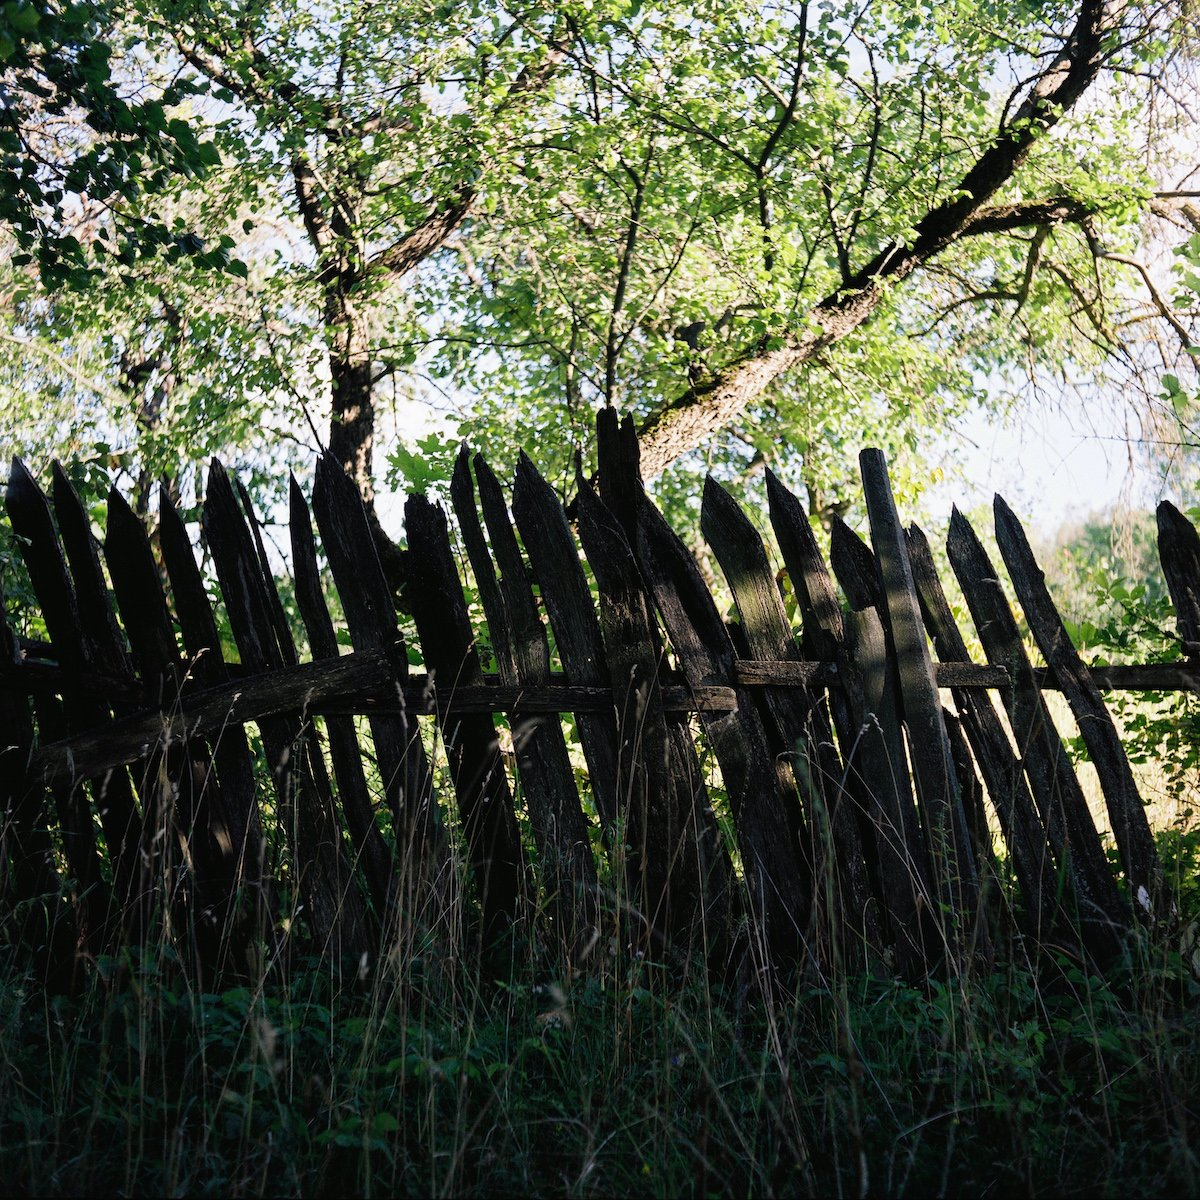 A typical fence in Chekalin